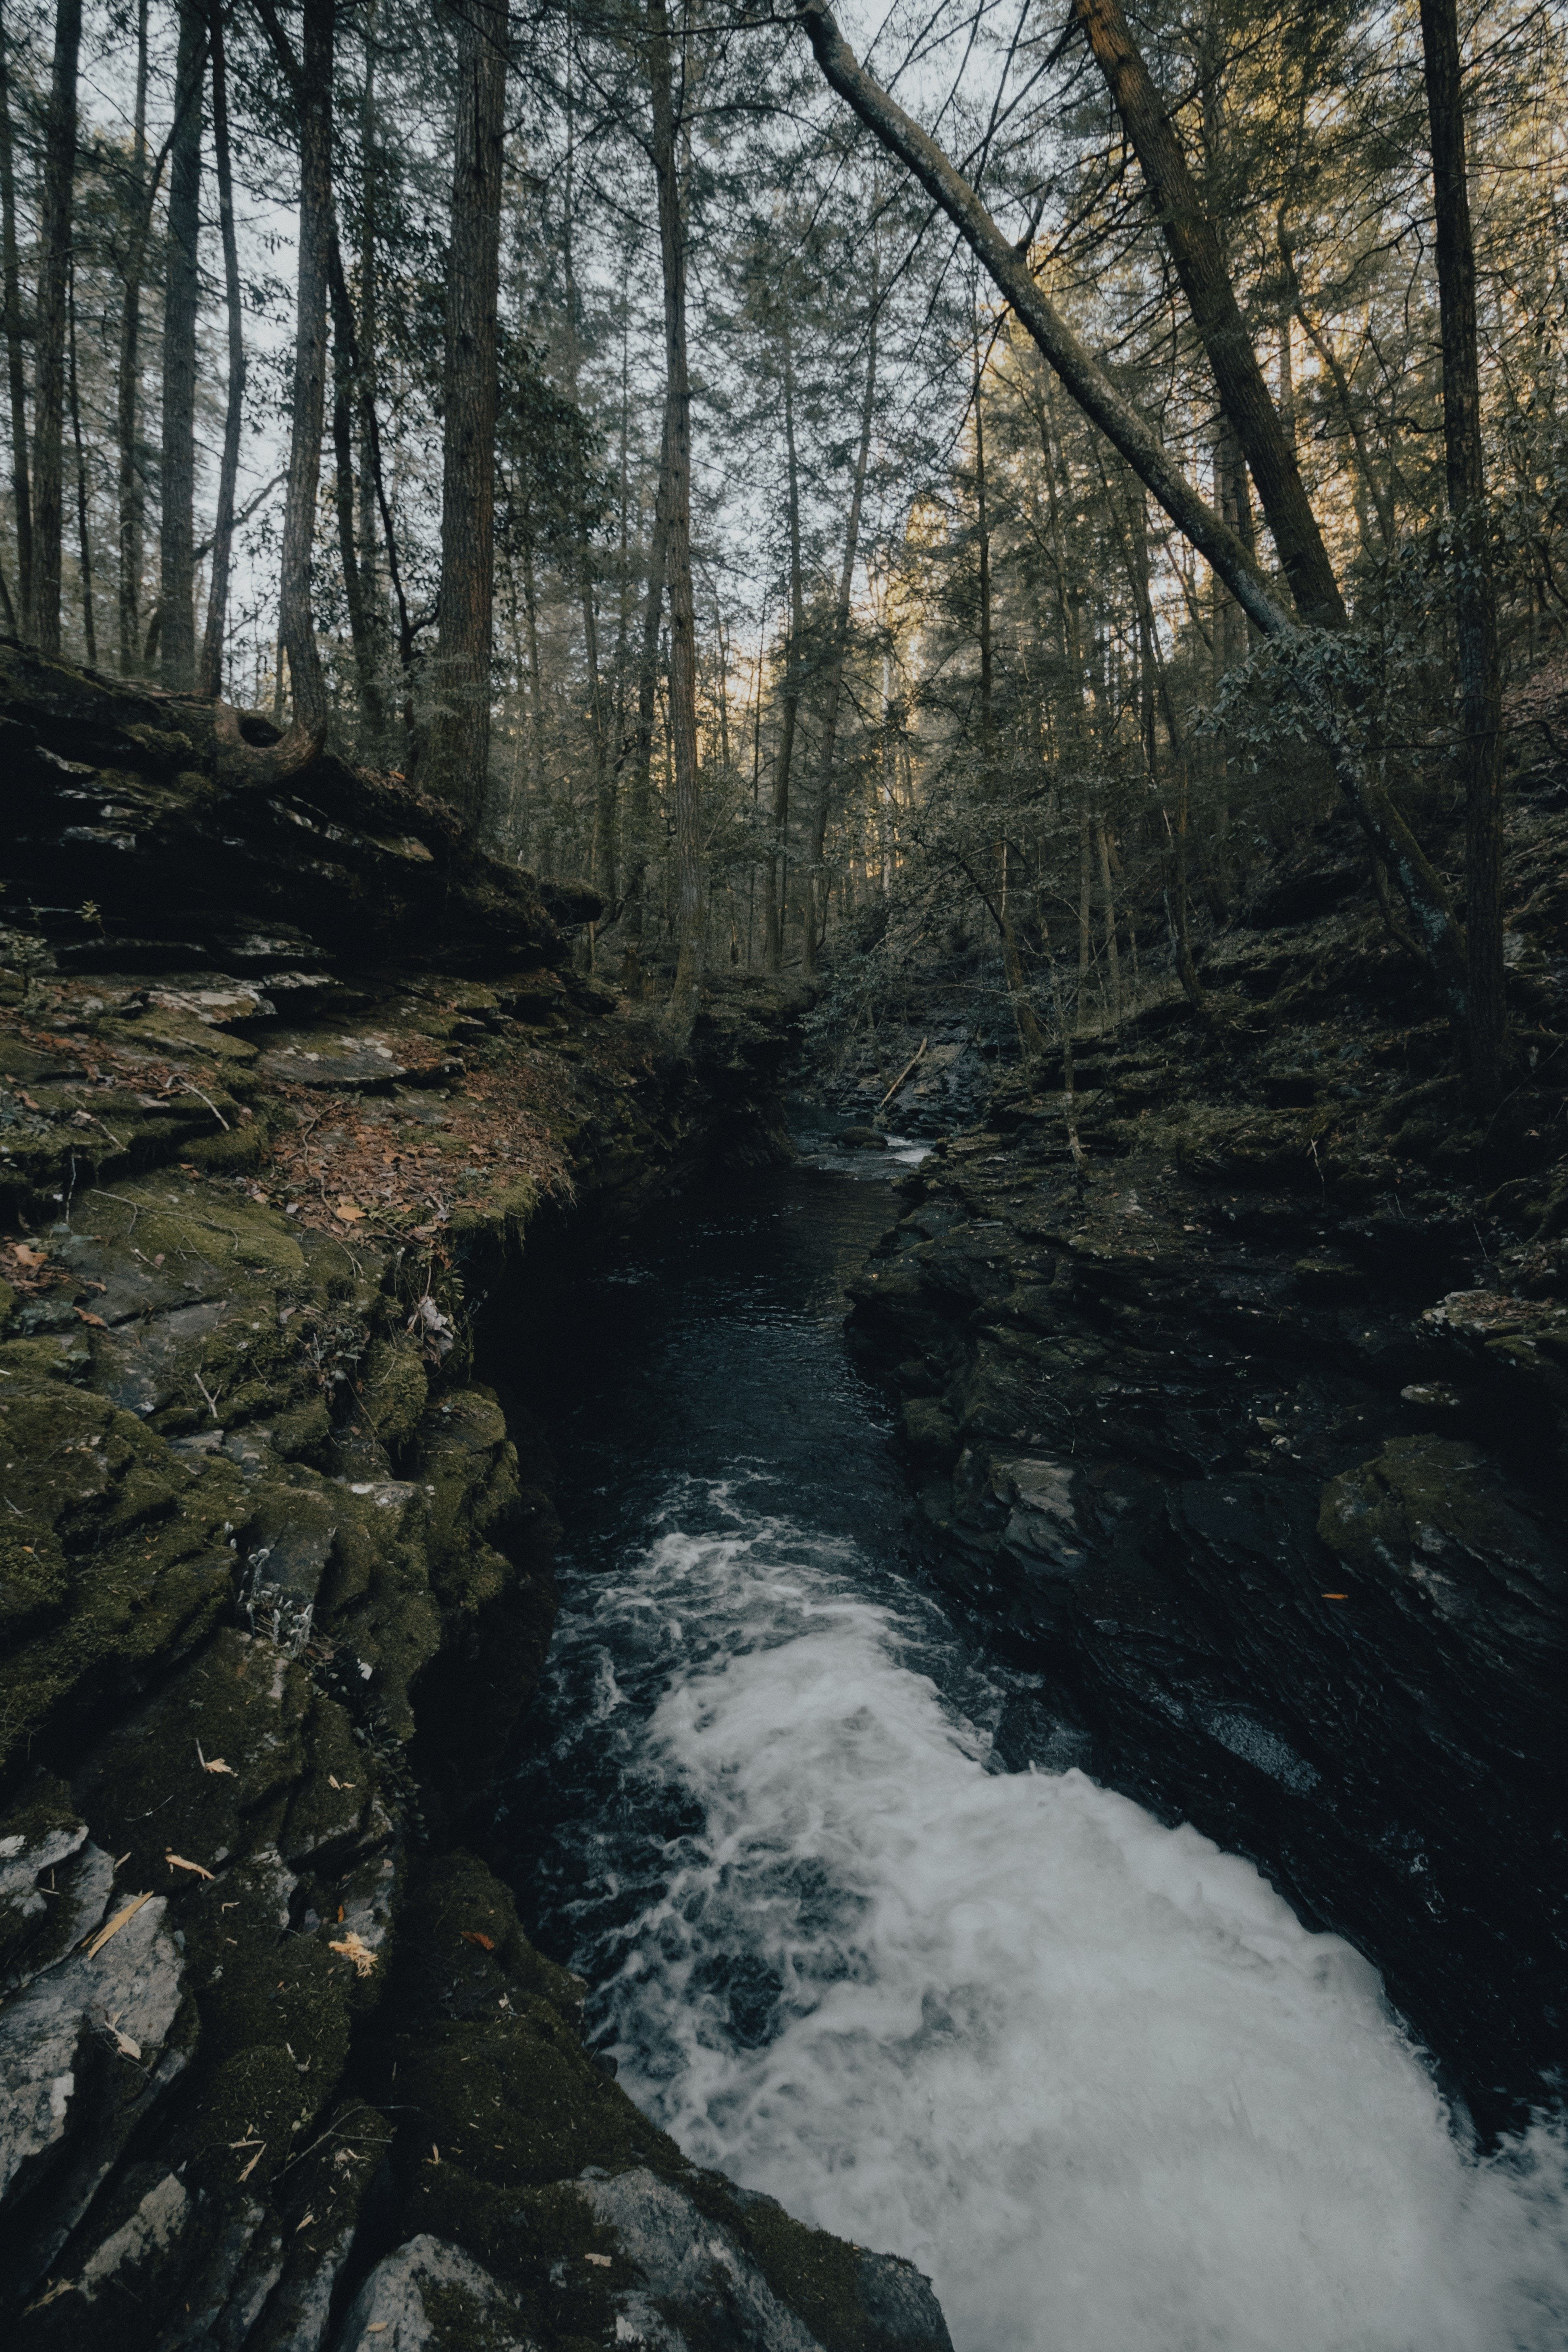 Fiery Gizzard Trail Sequatchie United States Landscape Photography Of Forest And River D9e0e4 Make Photography Landscape Photography Landscape Nature